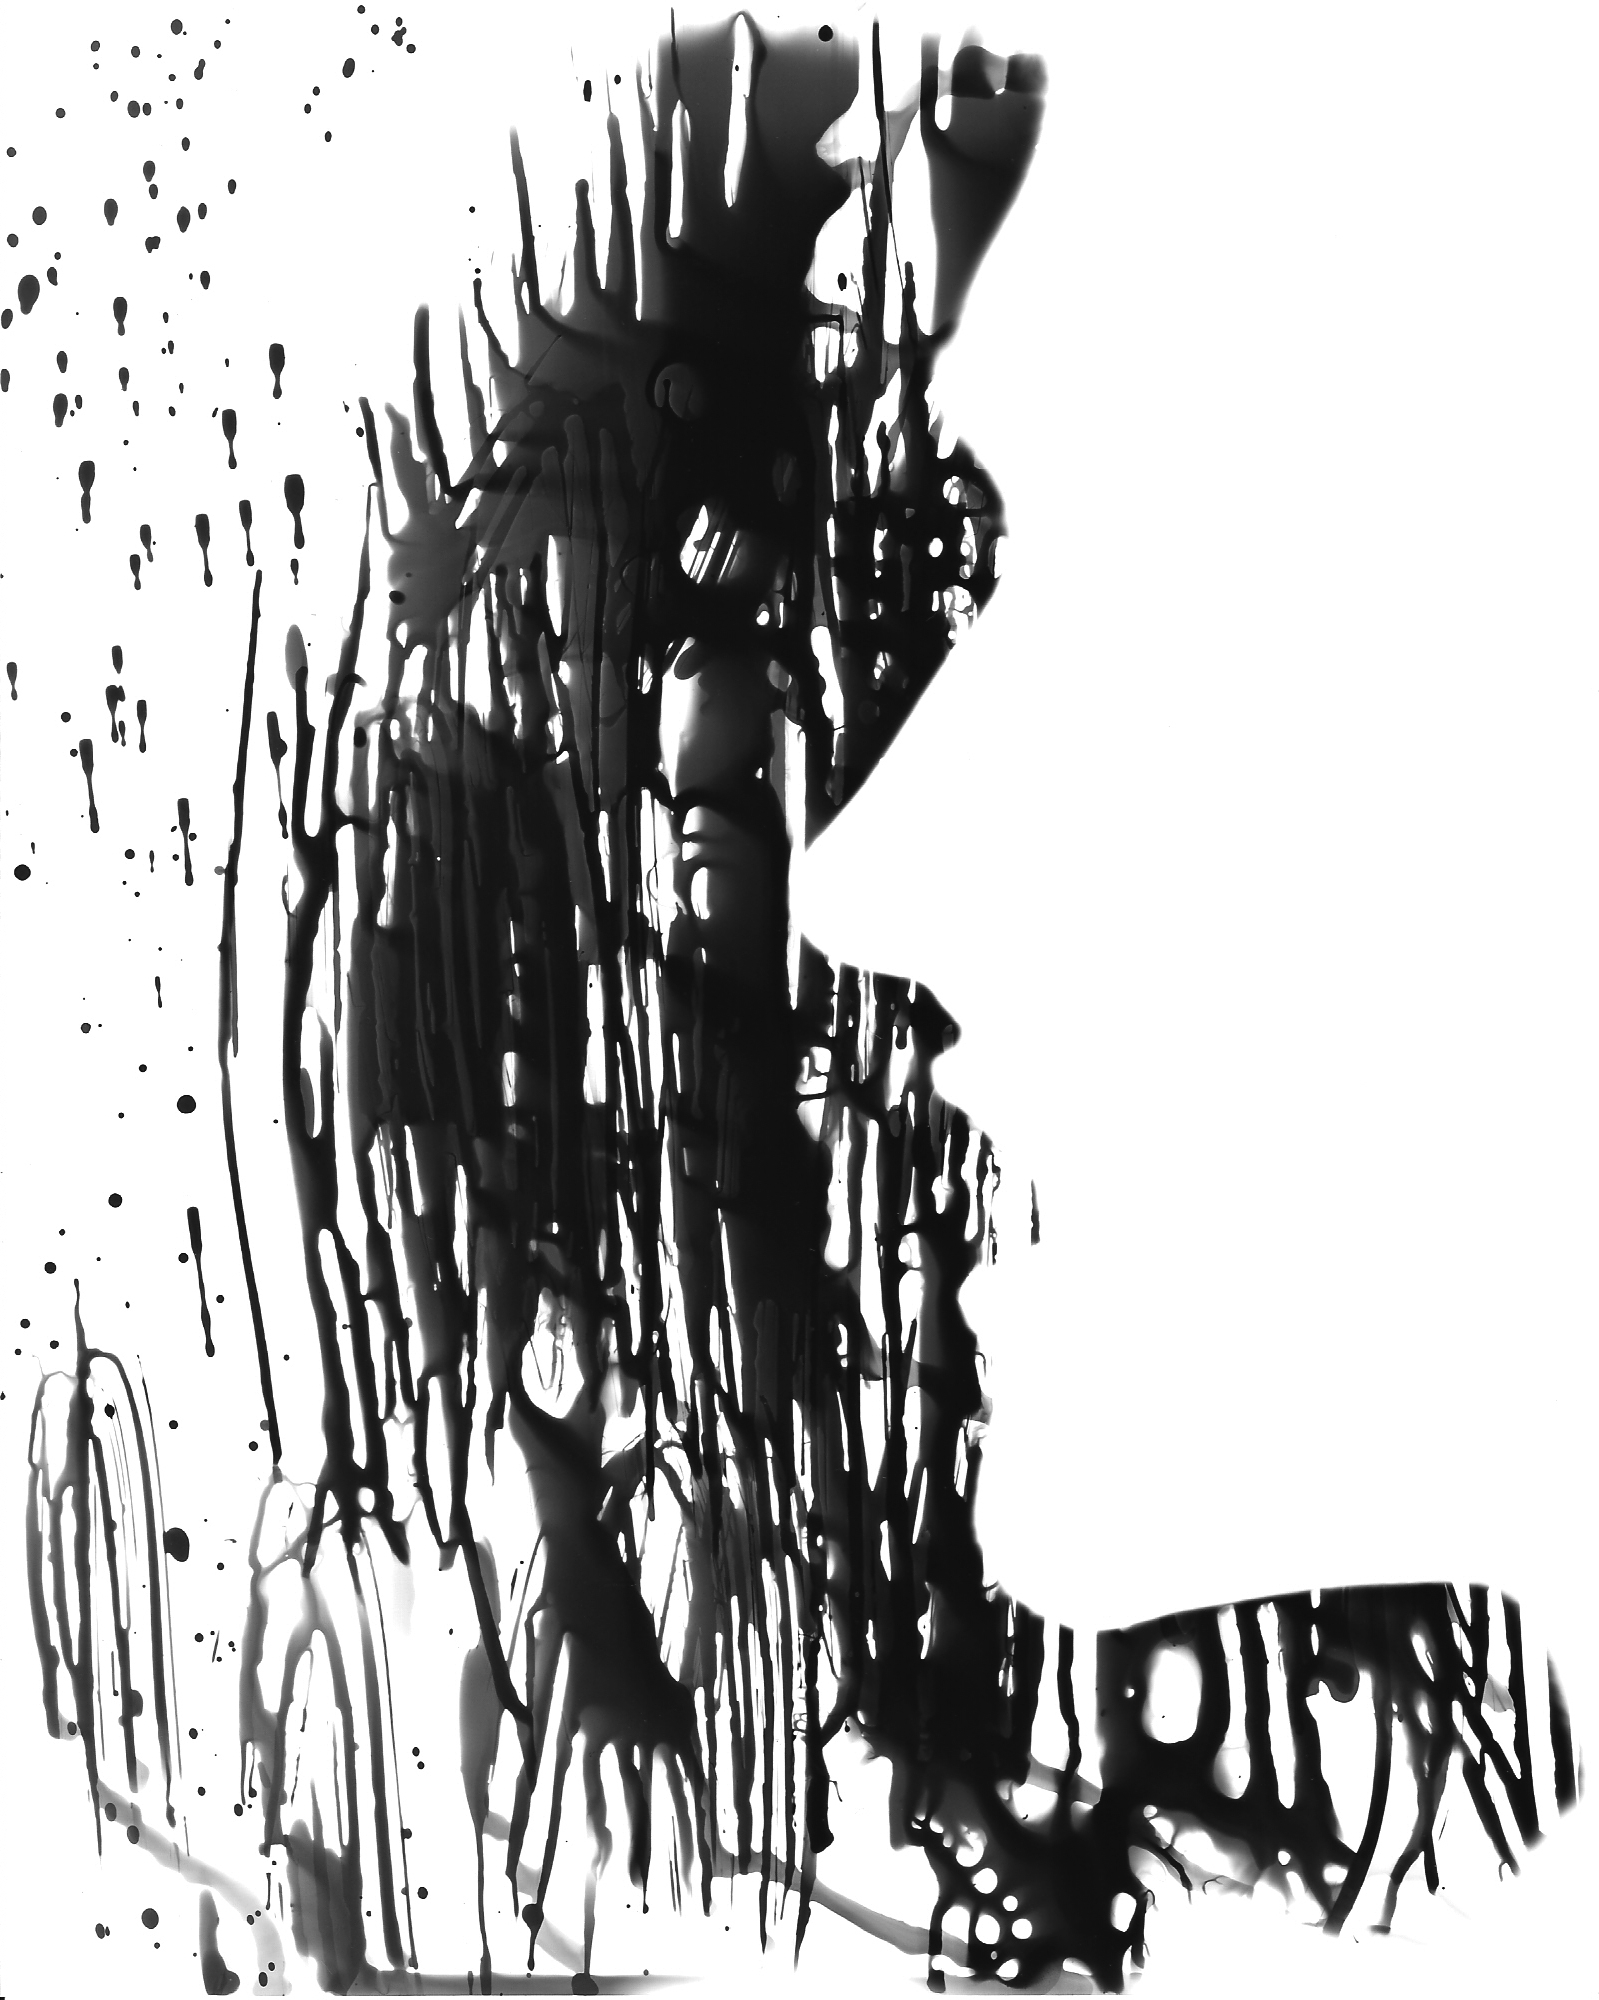 Photogram (Self Portrait) - 2009